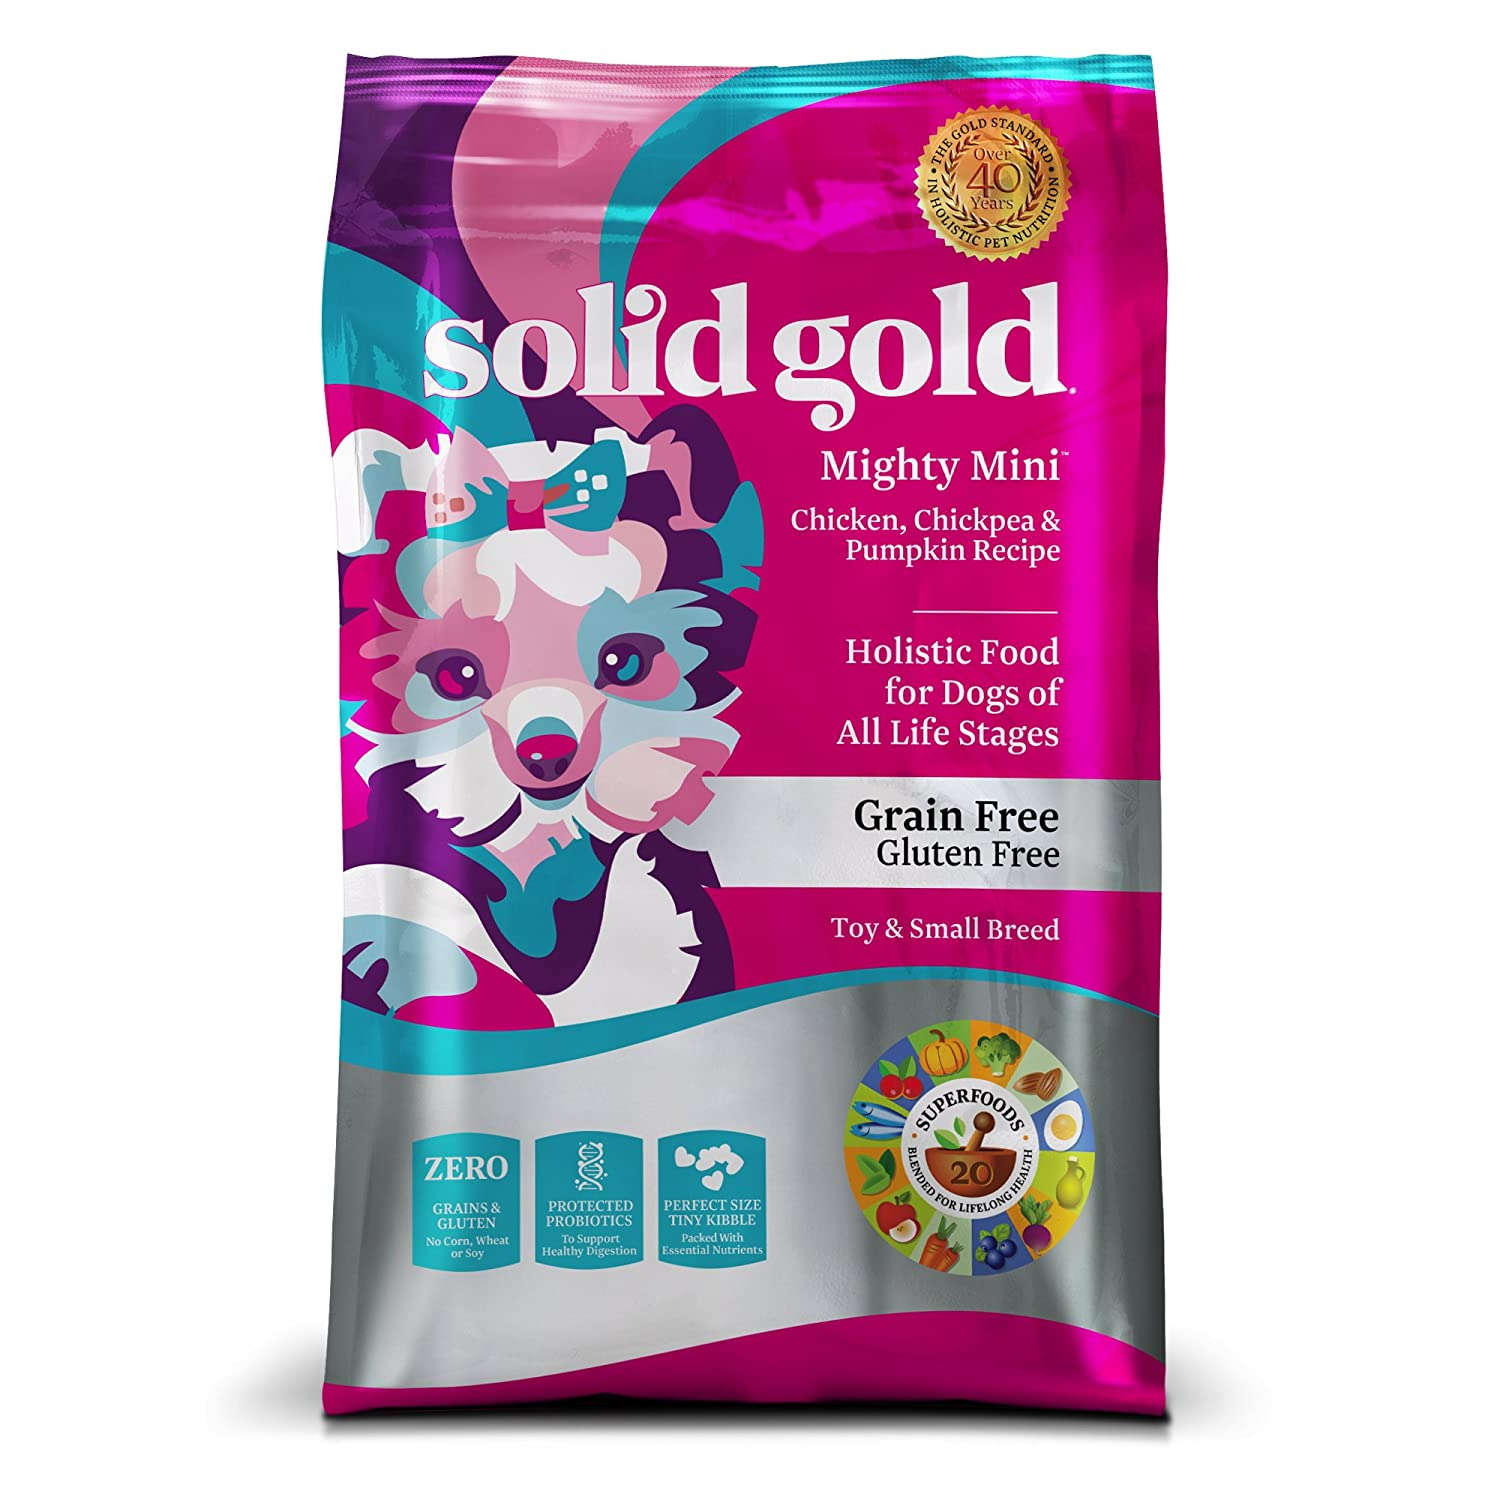 Solid Gold Grain Free Dog Food